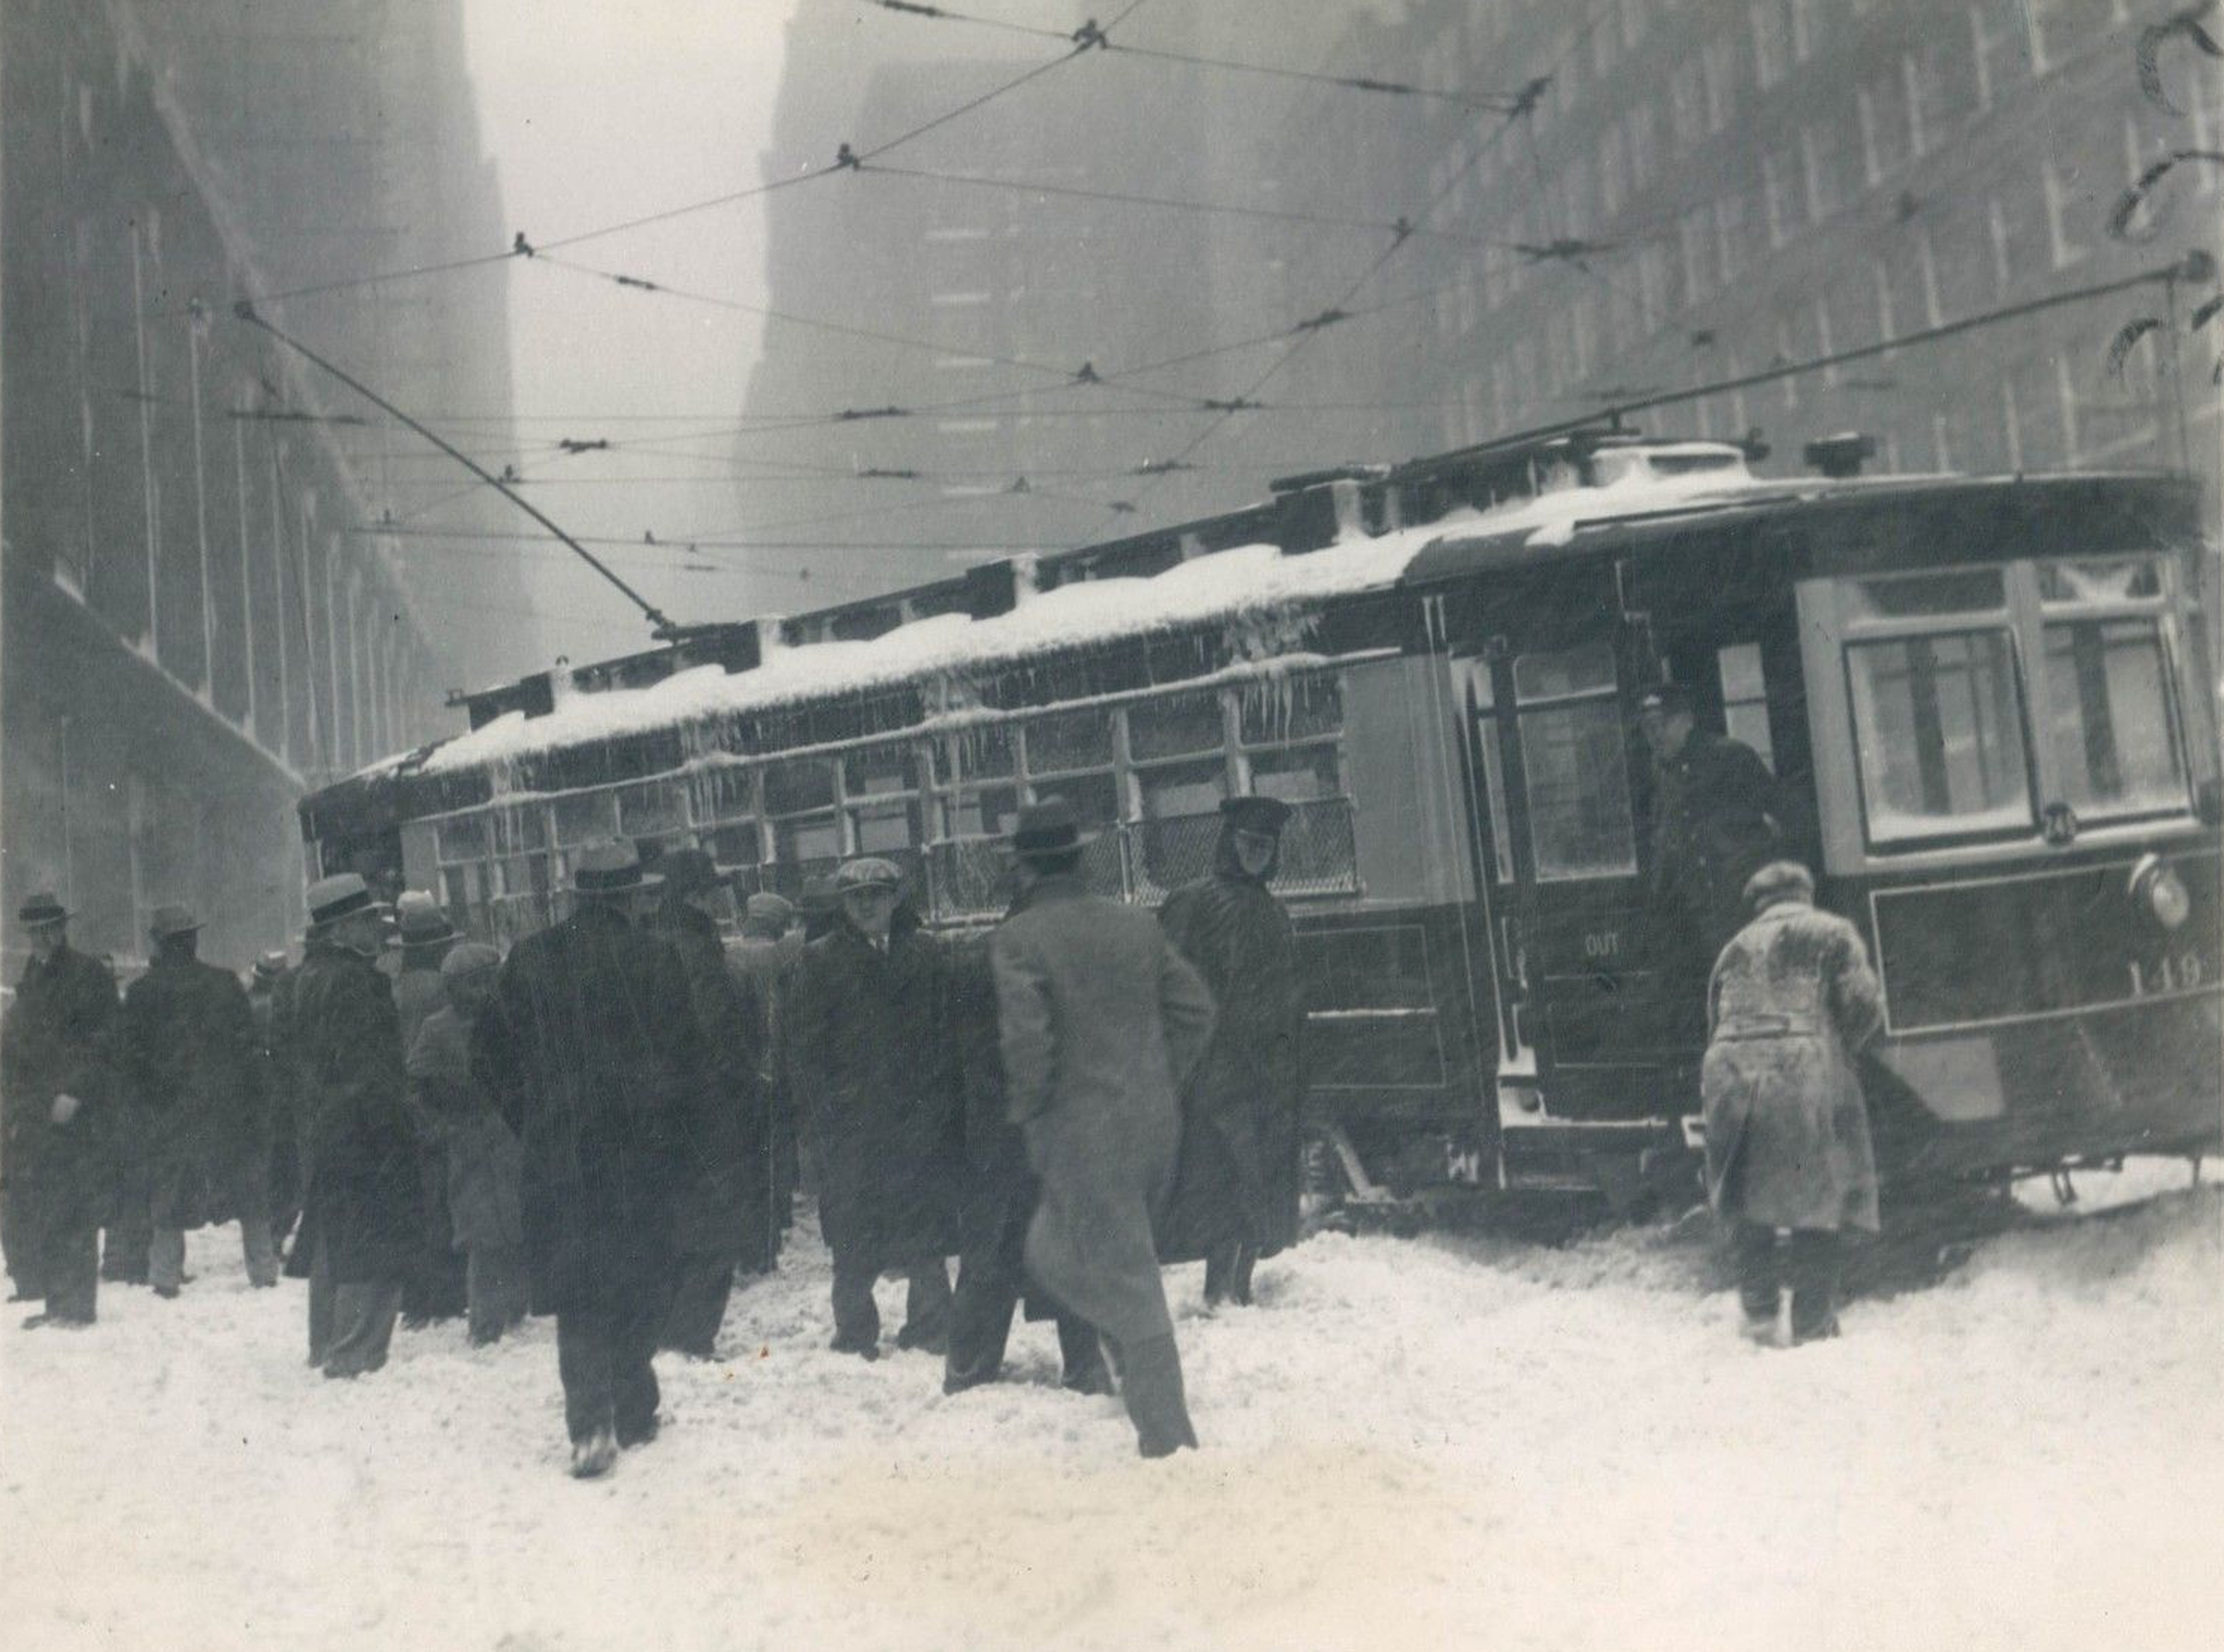 Worst Snowstorms In New York History - January 1925